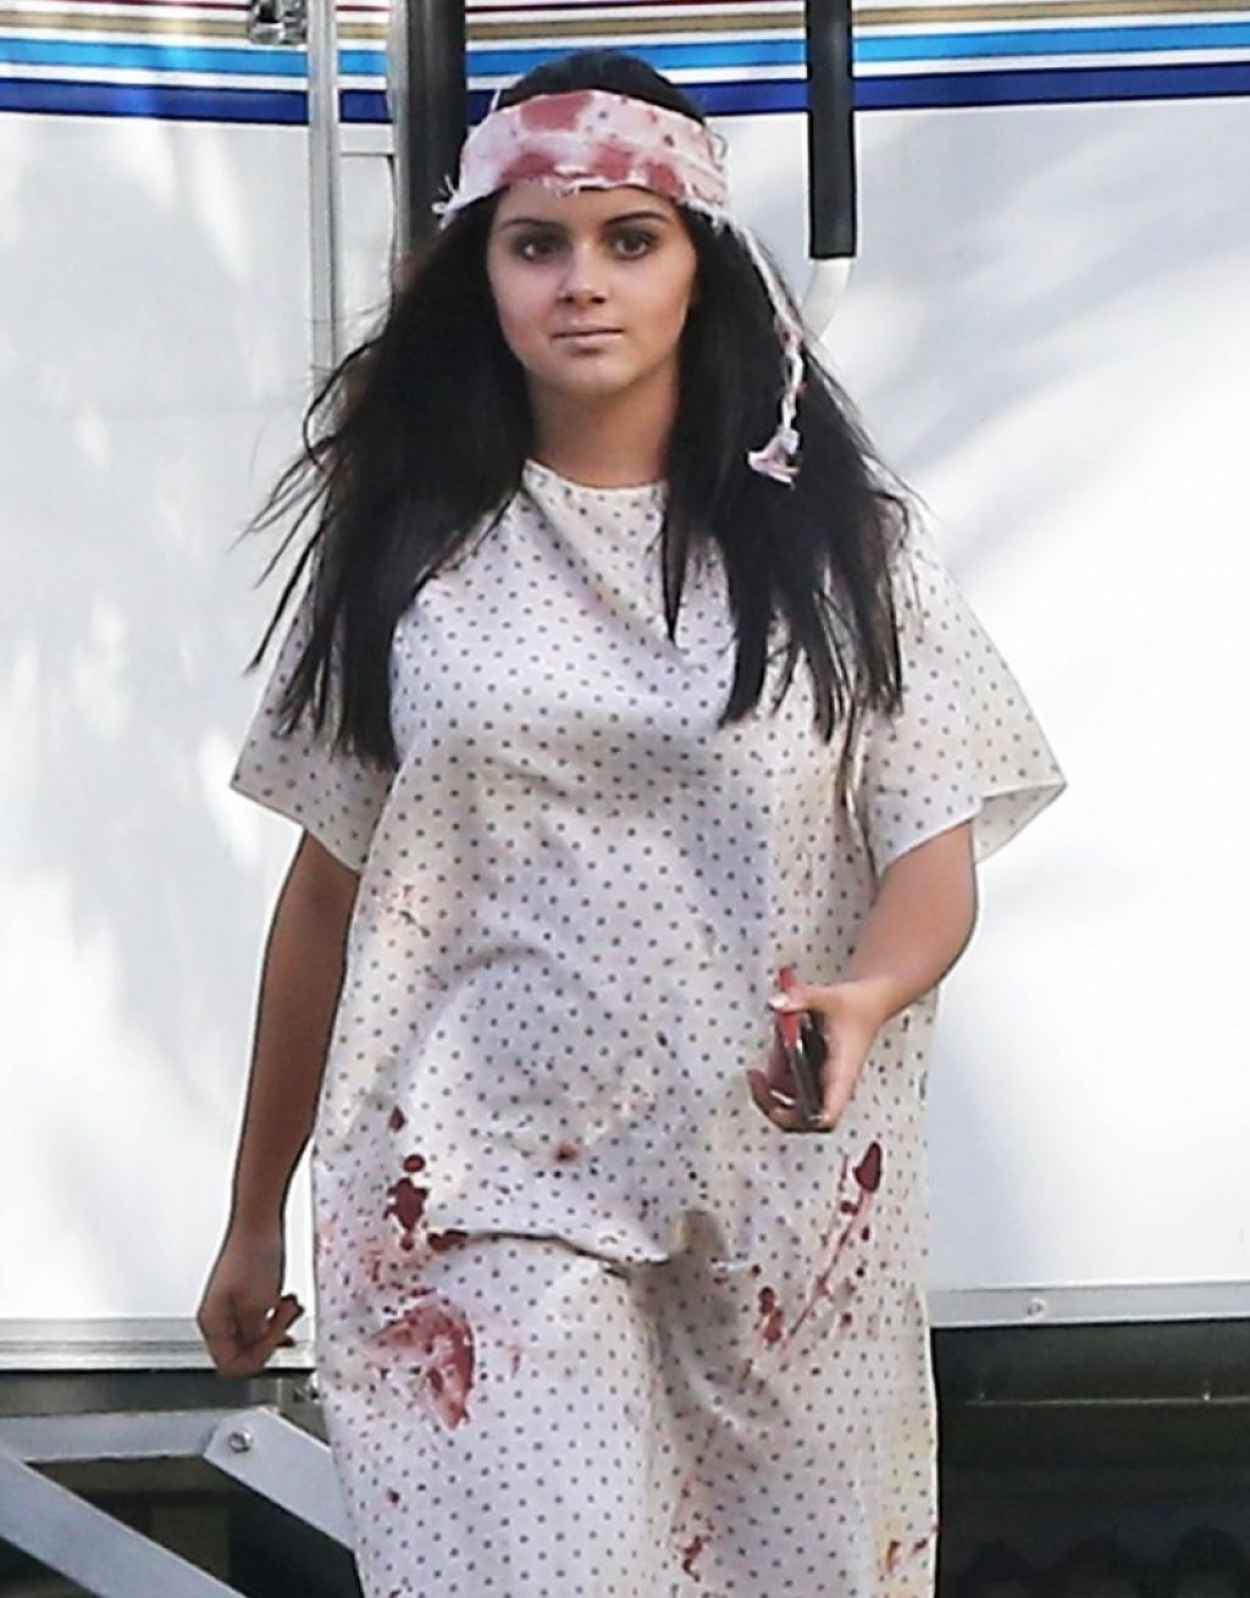 Ariel Winter - Modern Family Halloween Episode Set Photos - Sept. 2015-1